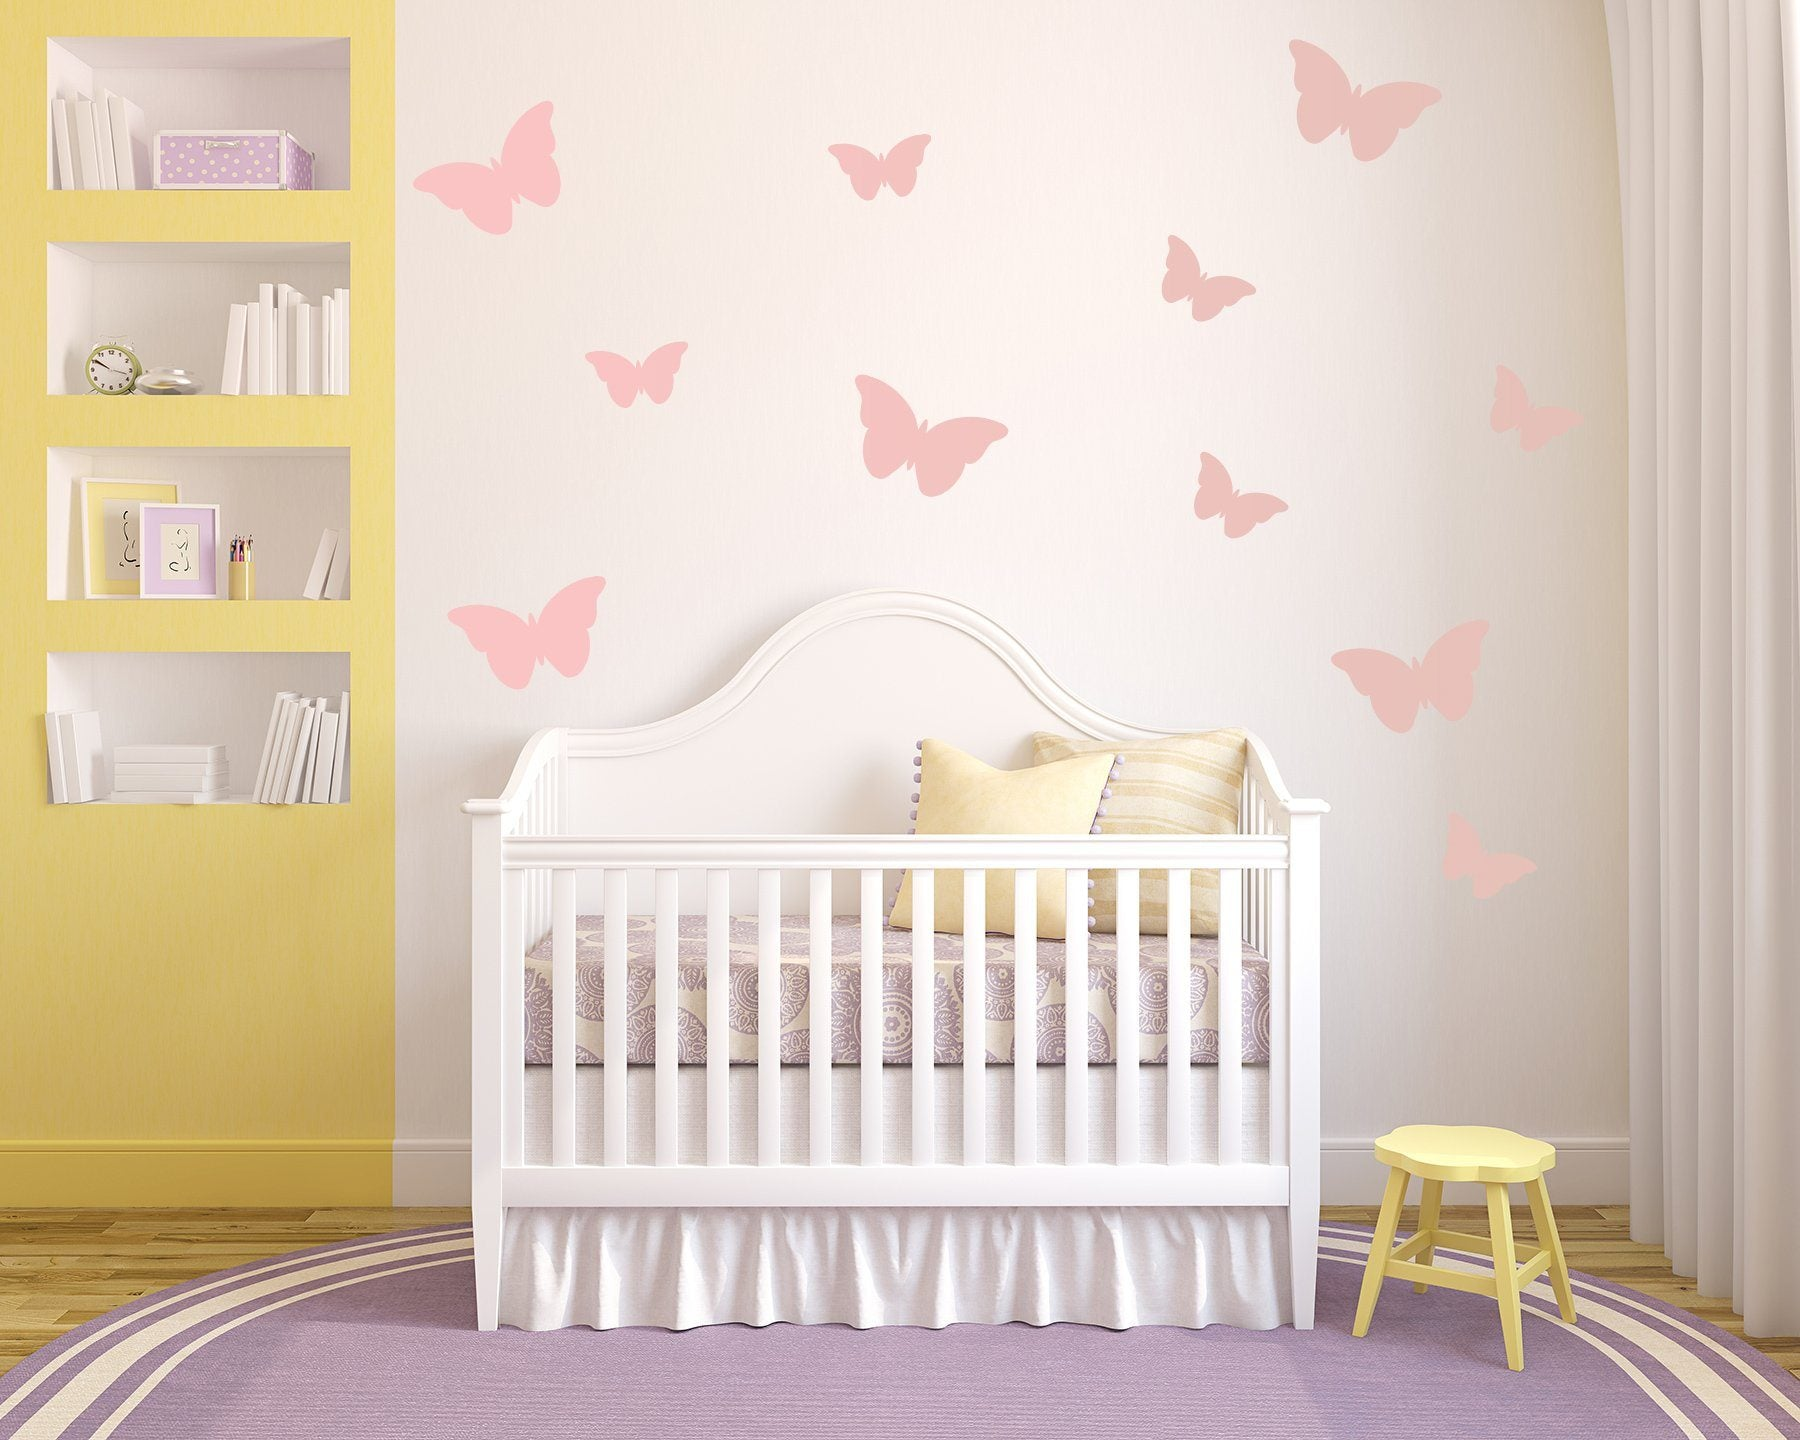 Butterflies Nursery Wall Art - Vinyl Wall Decals For Nurseries, Children's Rooms, And Home Decor